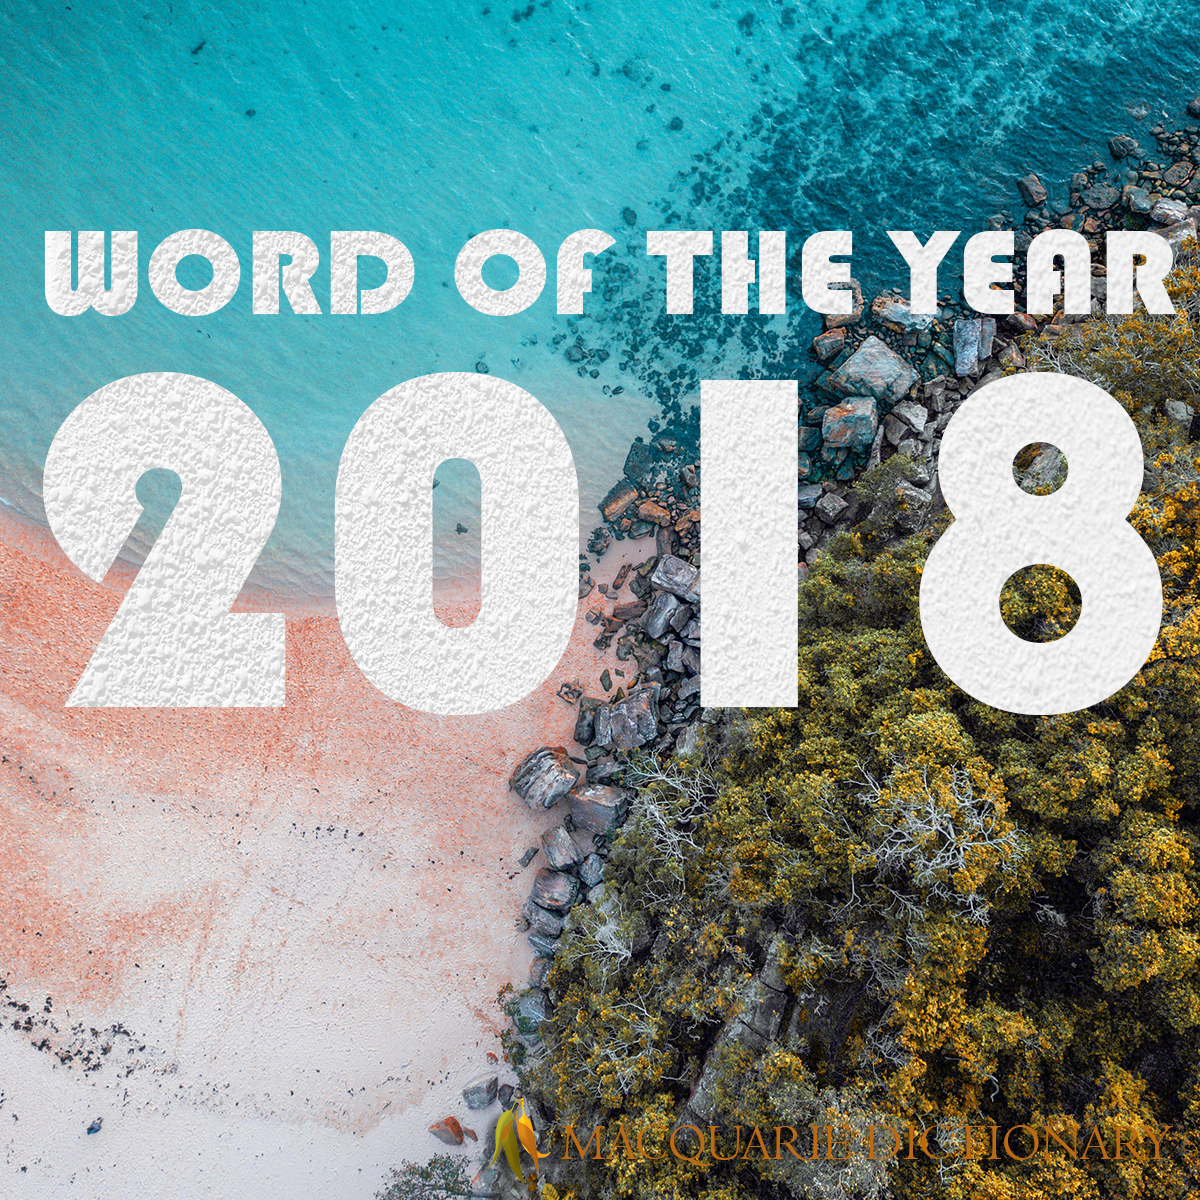 Image of beach with text 2018 Word of the Year